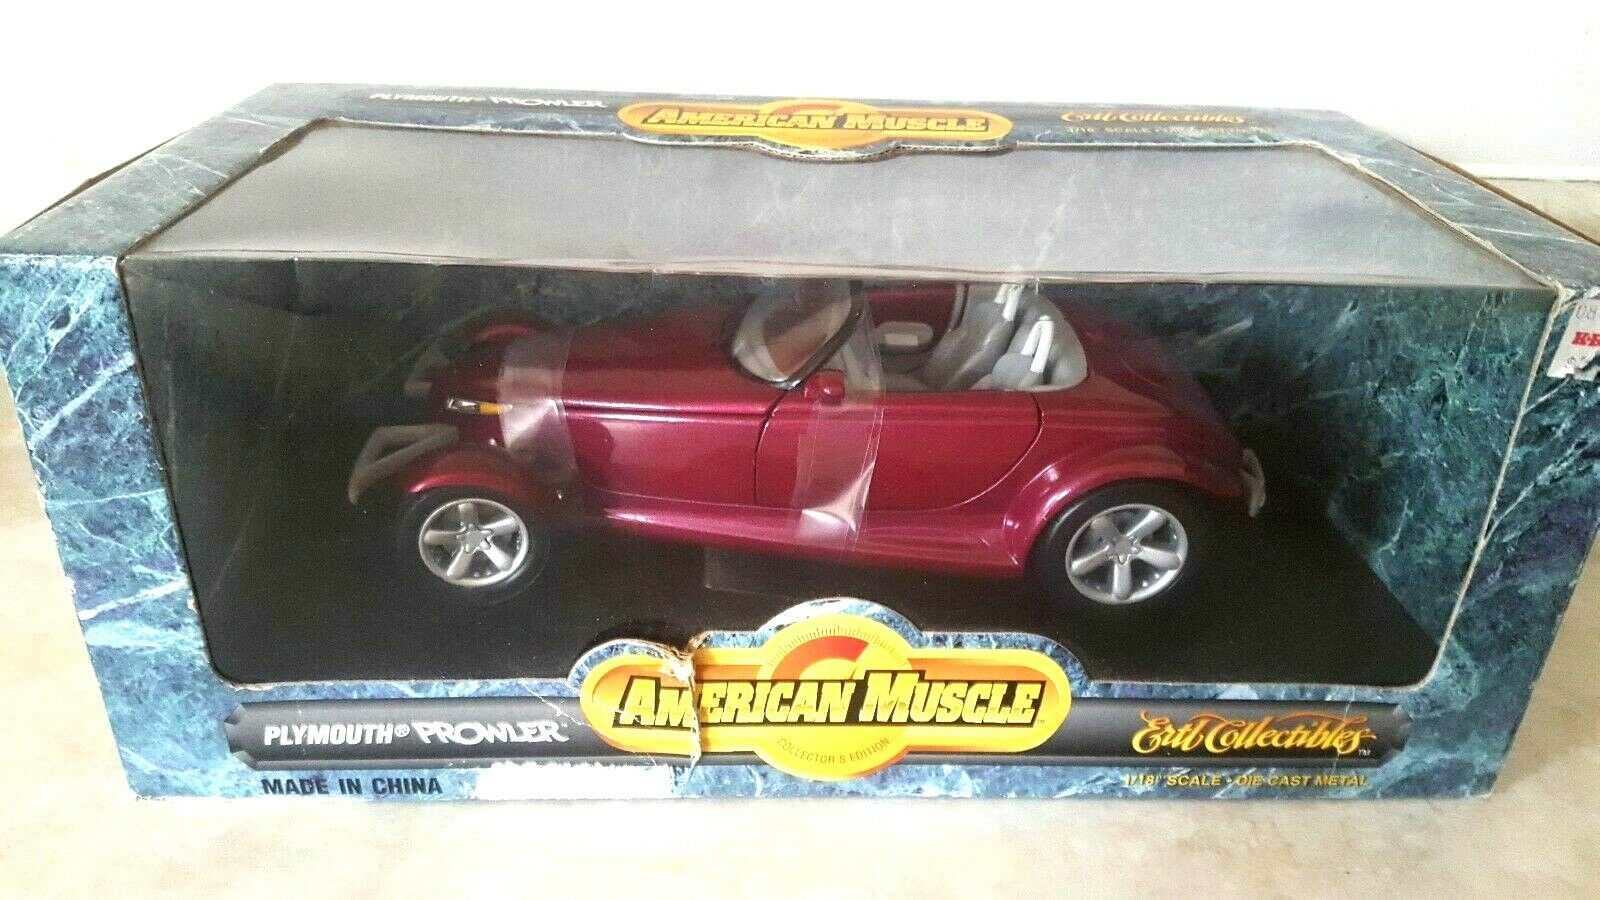 AMERICAN MUSCLE Diecast 1 18 Plymouth Prowler Purple With With With Box and Straps ERTL ab5073